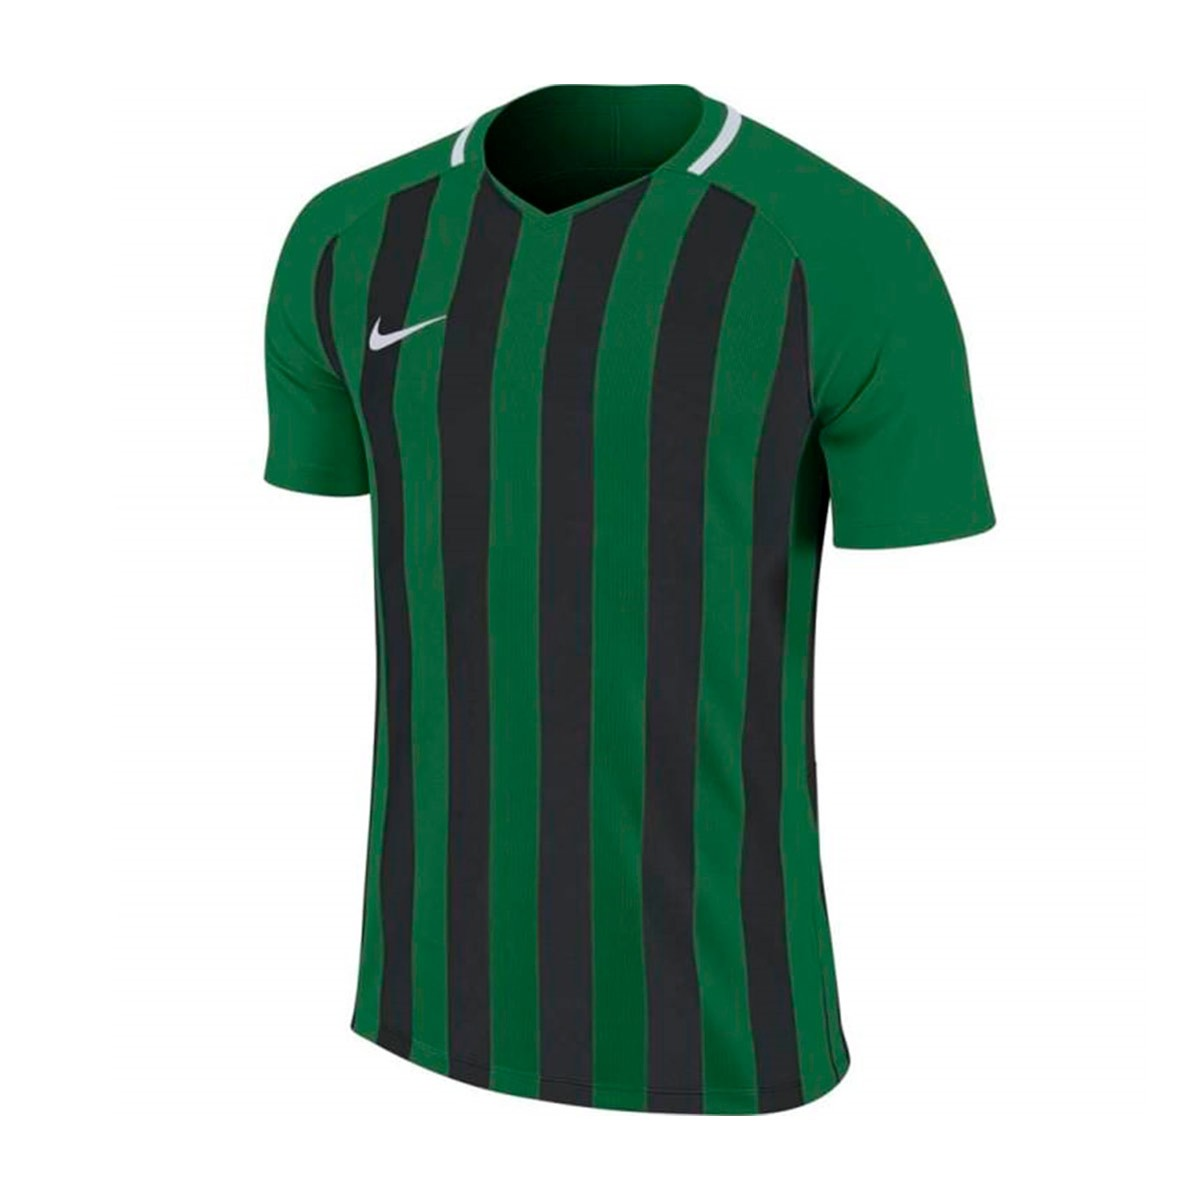 Nike Kids Striped Division III m/c Jersey